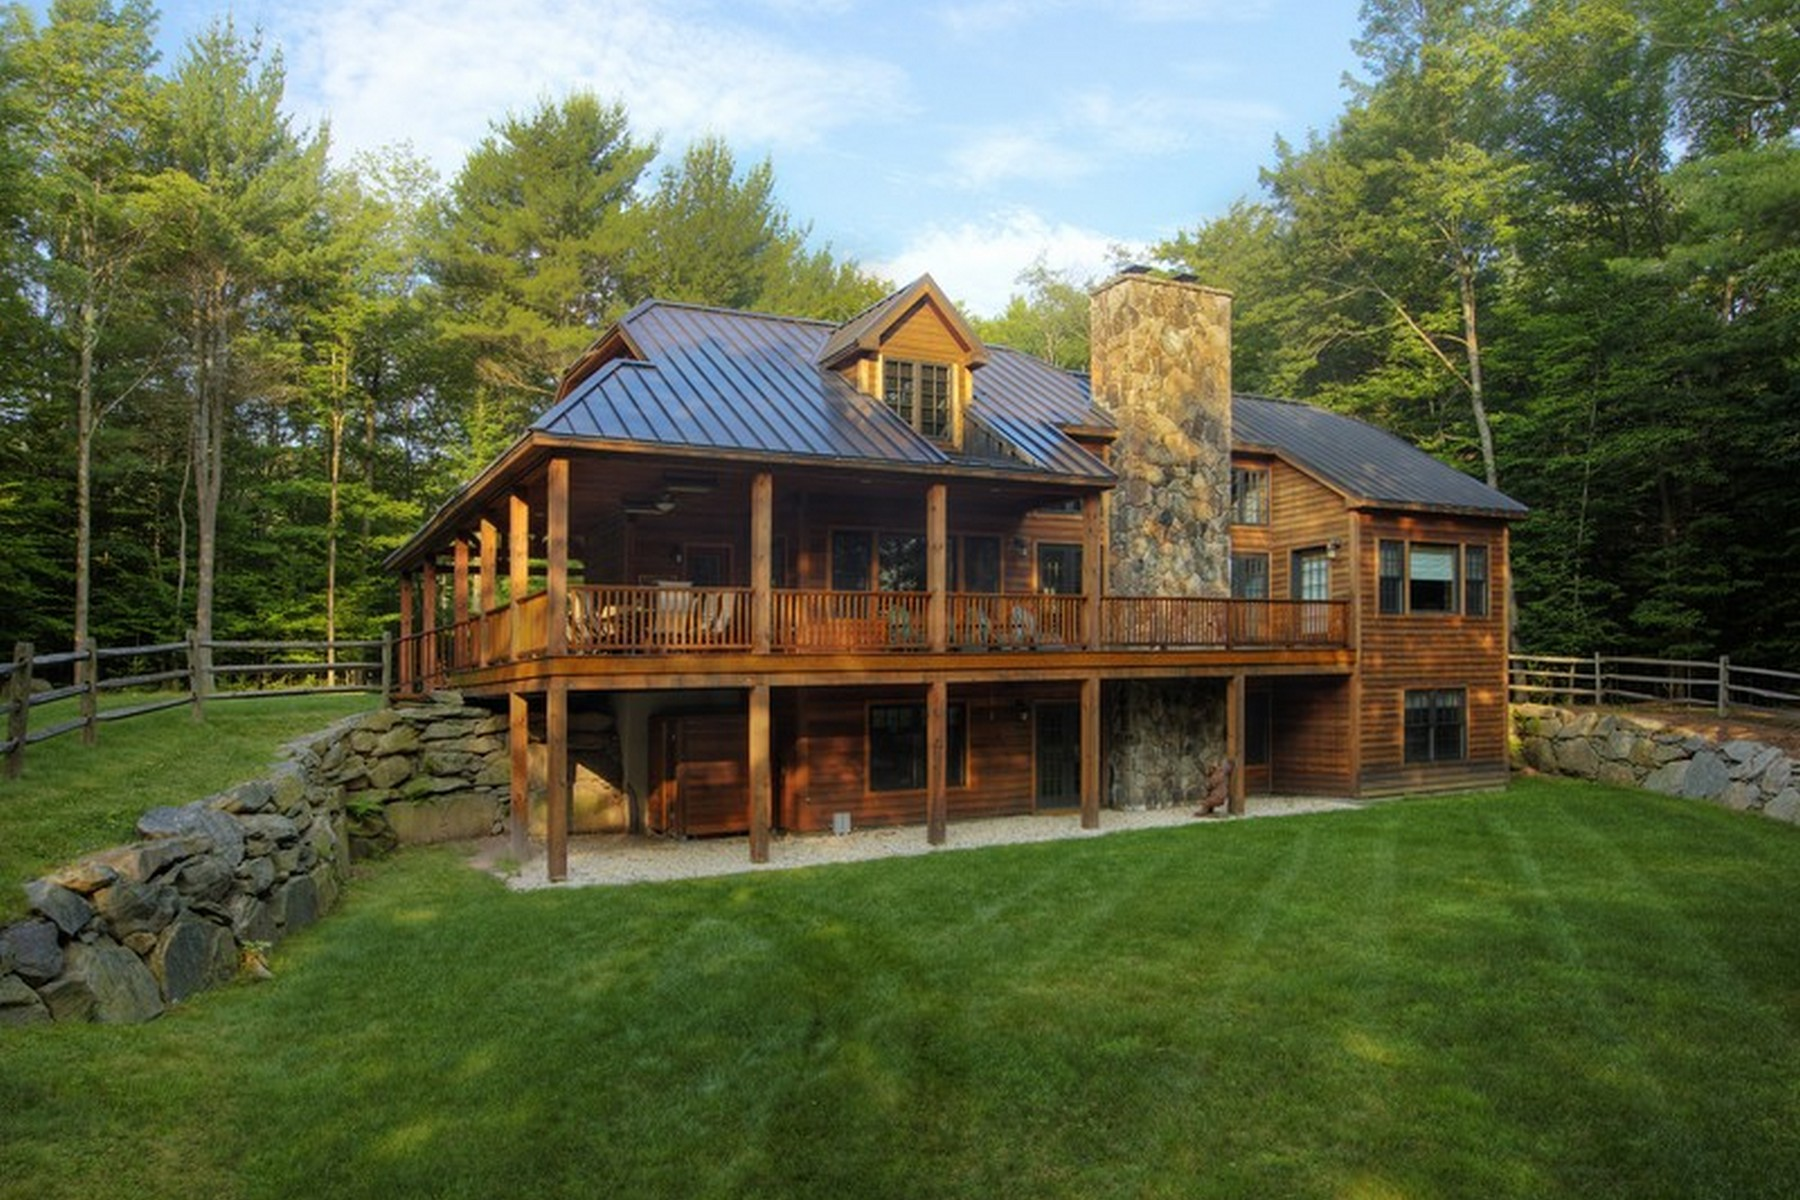 Villa per Vendita alle ore Fawn Haven Lodge at The Chapin Estate 43 Homestead Trl Bethel, New York 12720 Stati Uniti